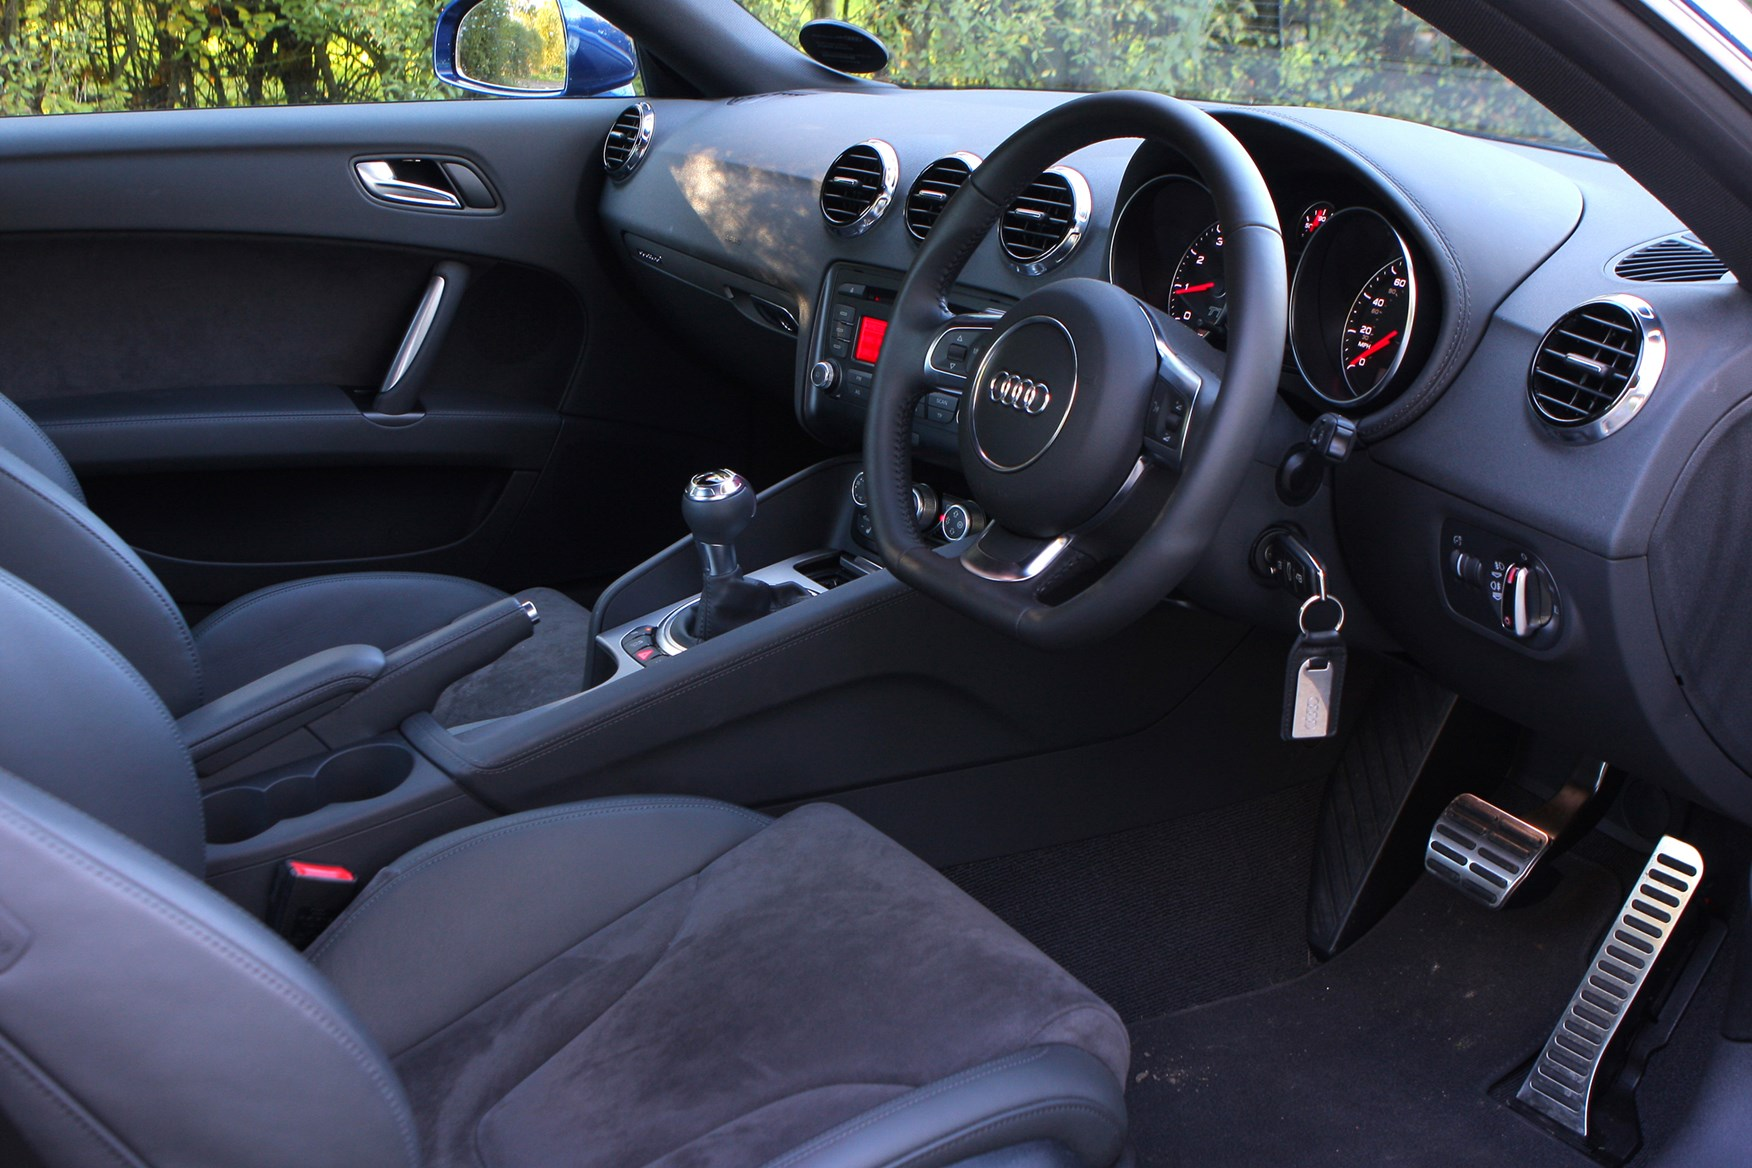 2007 audi tt interior for Audi tt interieur